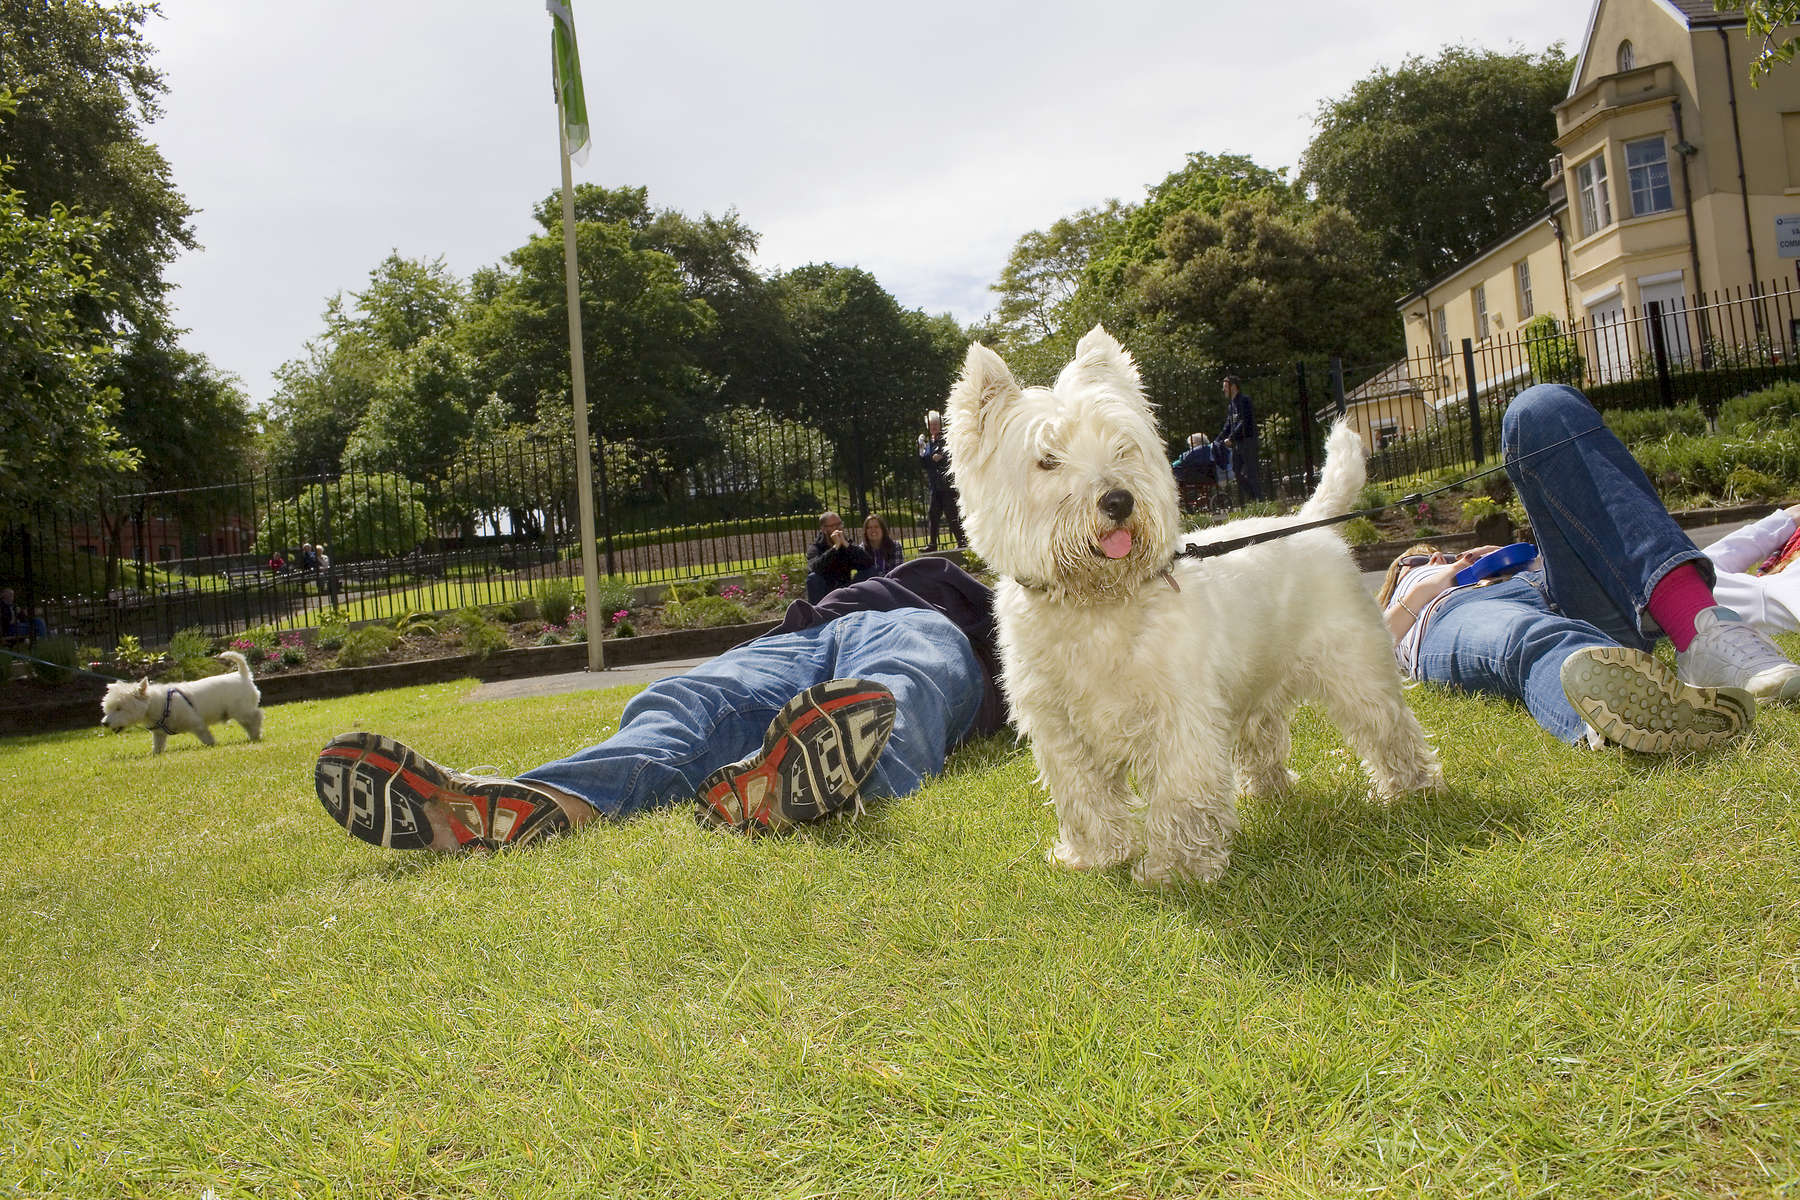 A white Westie dog in Vale Park, New Brighton.In 1986, world famous photographer Martin Parr published his book 'The Last Resort,' a set of photographs taken over three seasons 1983-85 in the Liverpool suburb of New Brighton. 25 years later, photographer and Parr fan, Peter Dench, went on a Bank Holiday pilgrimage to New Brighton to walk in Parr's footsteps and document what has changed or remained the same in the seaside town.